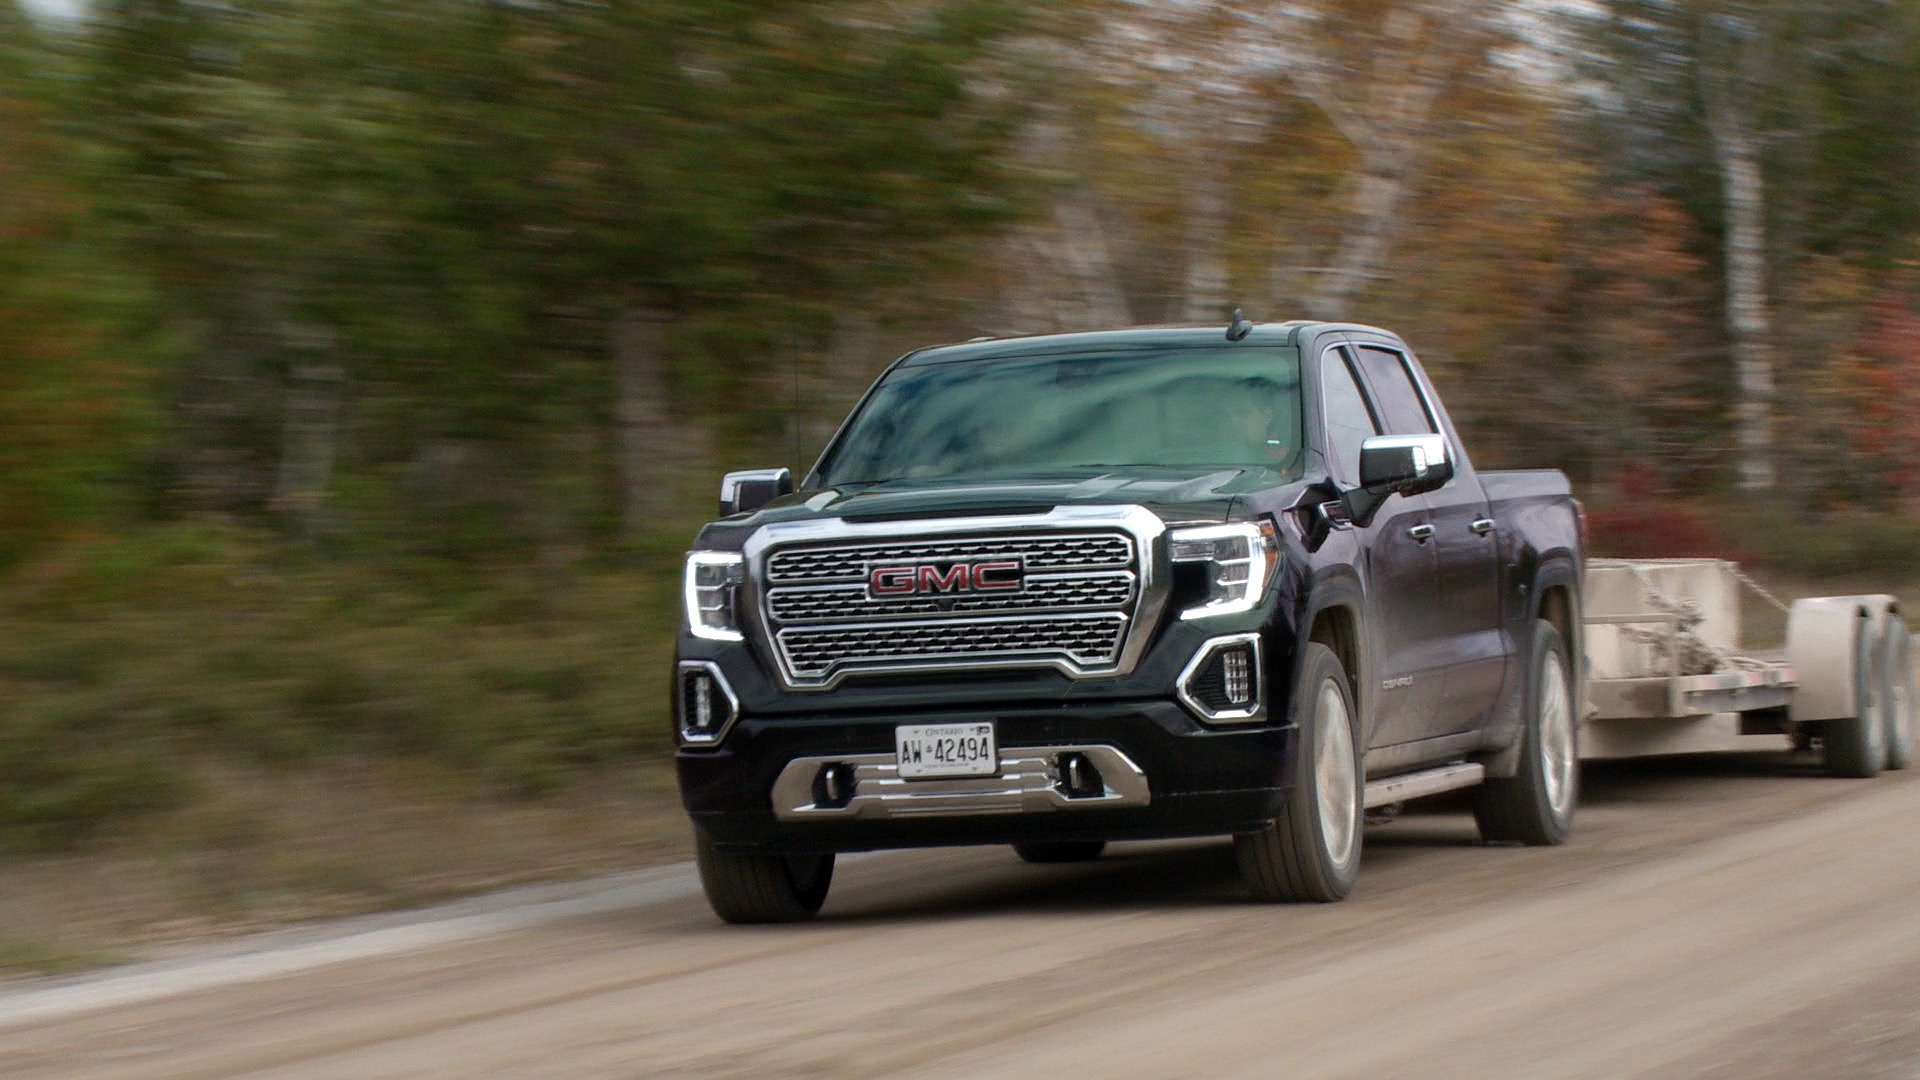 All-New GMC Sierra Denali Wins the 2019 Canadian Truck King Challenge